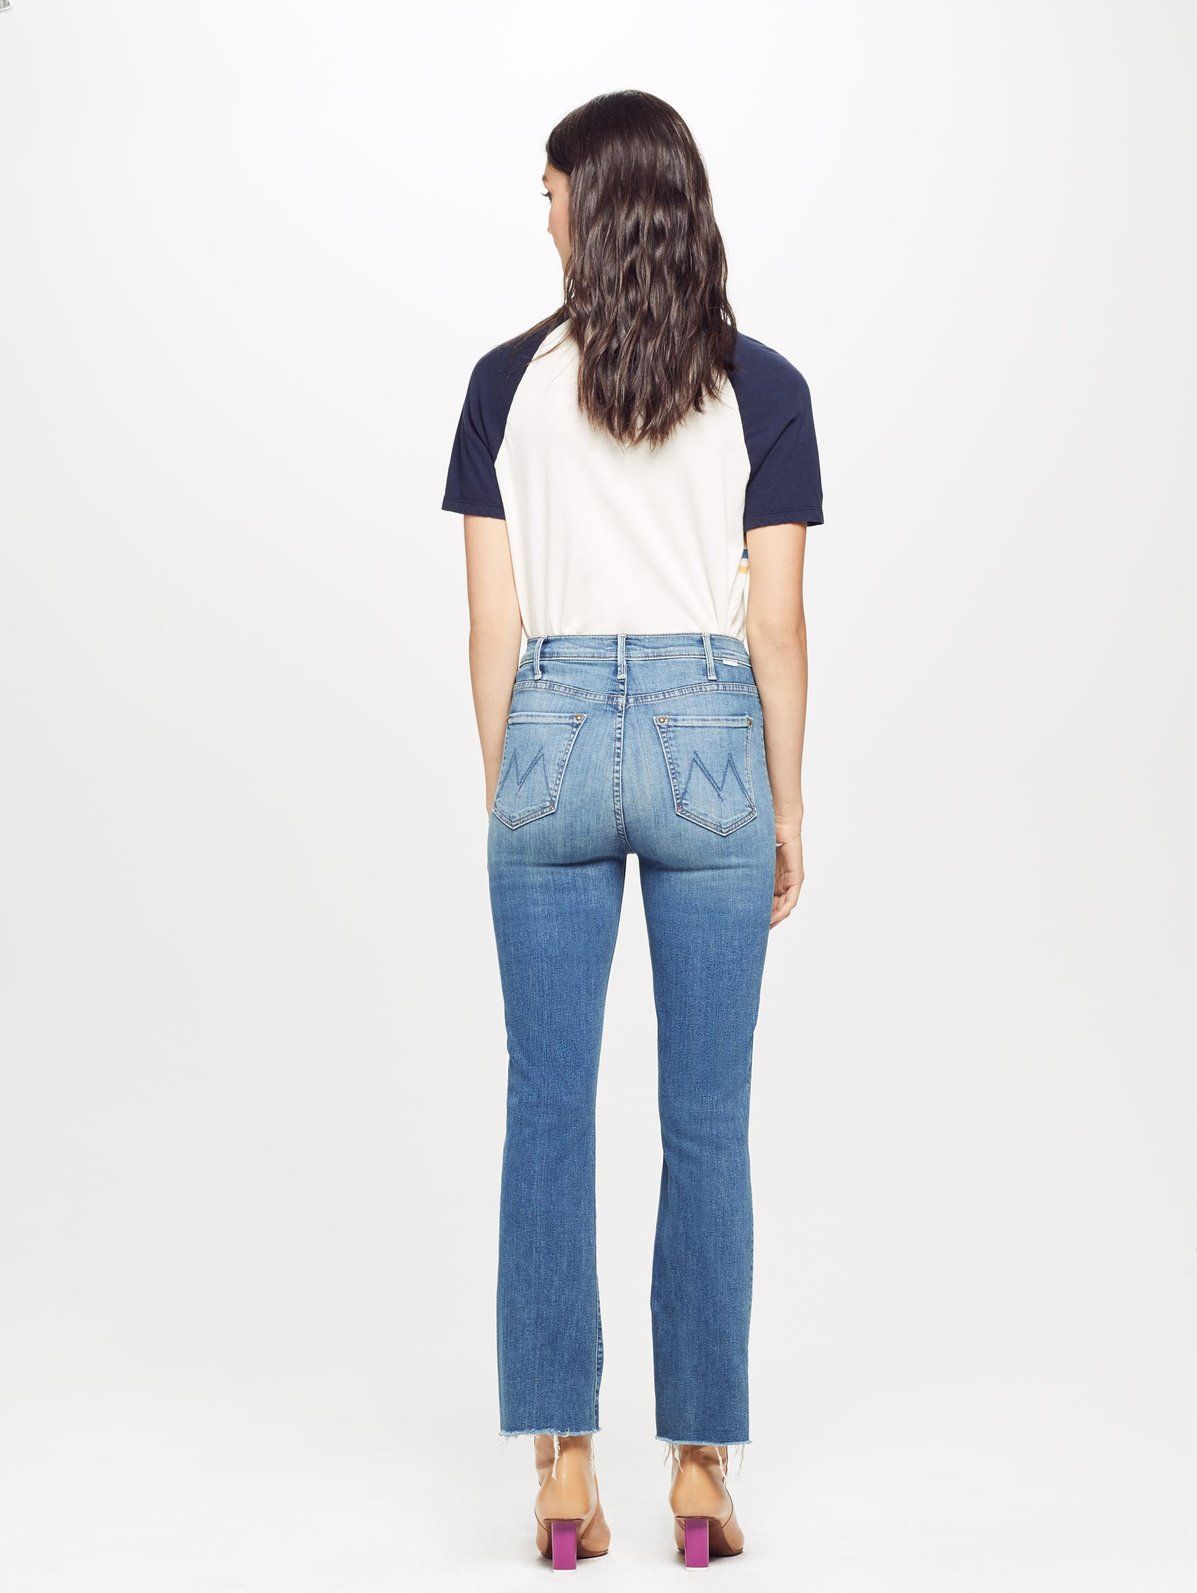 196e105b78d The Patch Pocket Hustler Ankle Fray - Love For Sail. Ahoy! In a denim wash  as blue as the ocean, MOTHER set sail in her favorite bootcut jean with  exposed ...